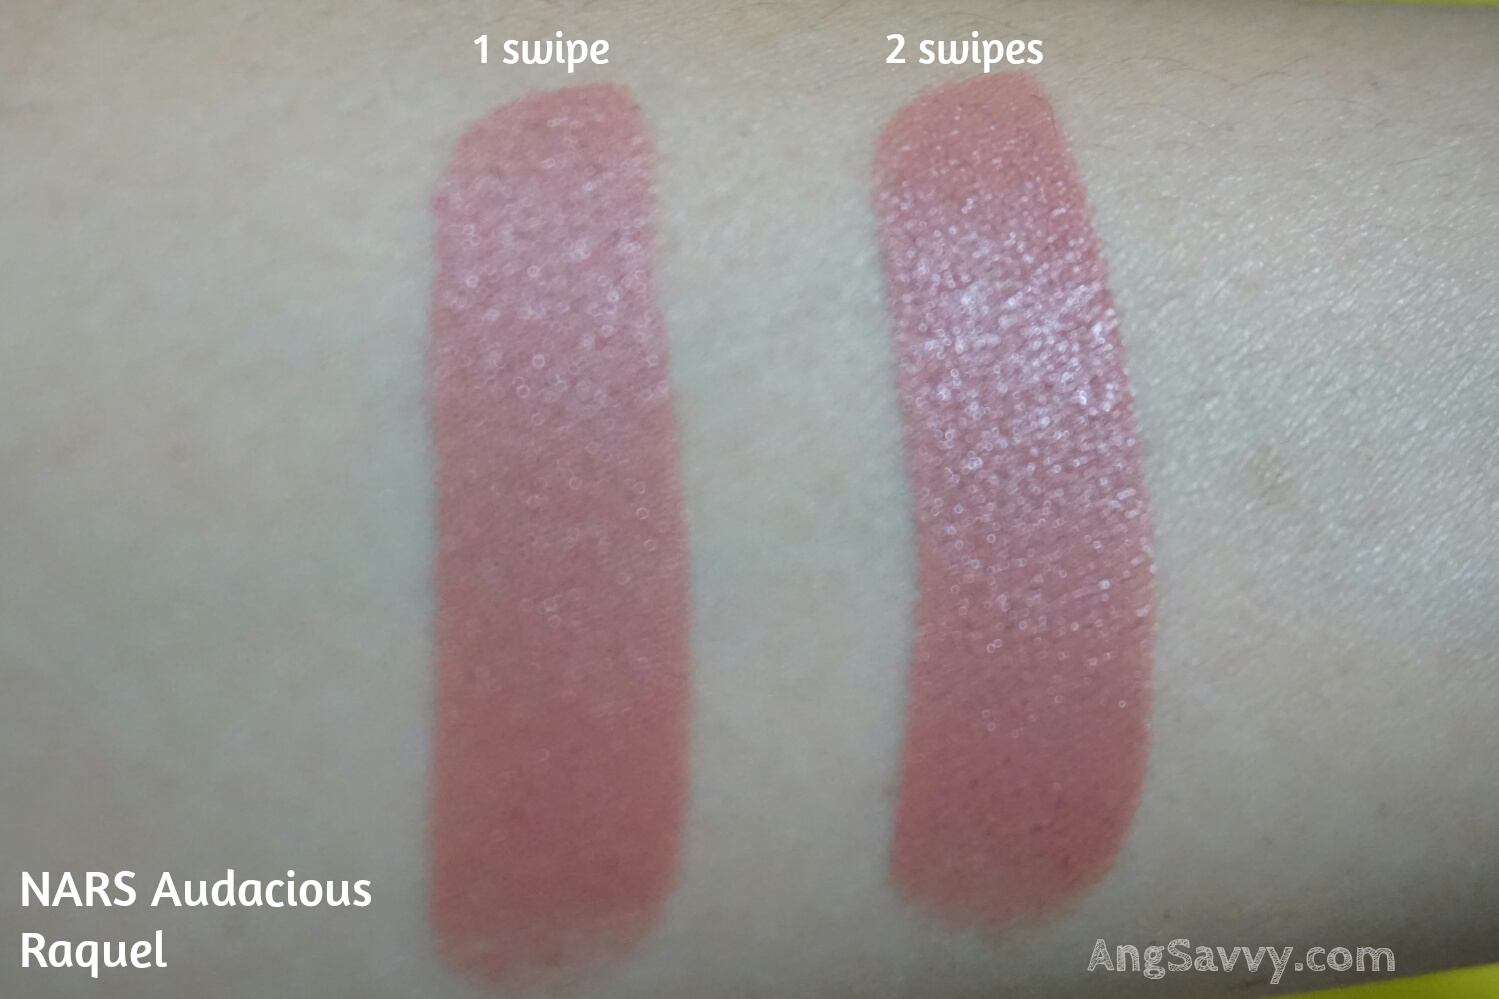 Swatches for NARS Raquel Audacious Lipstick